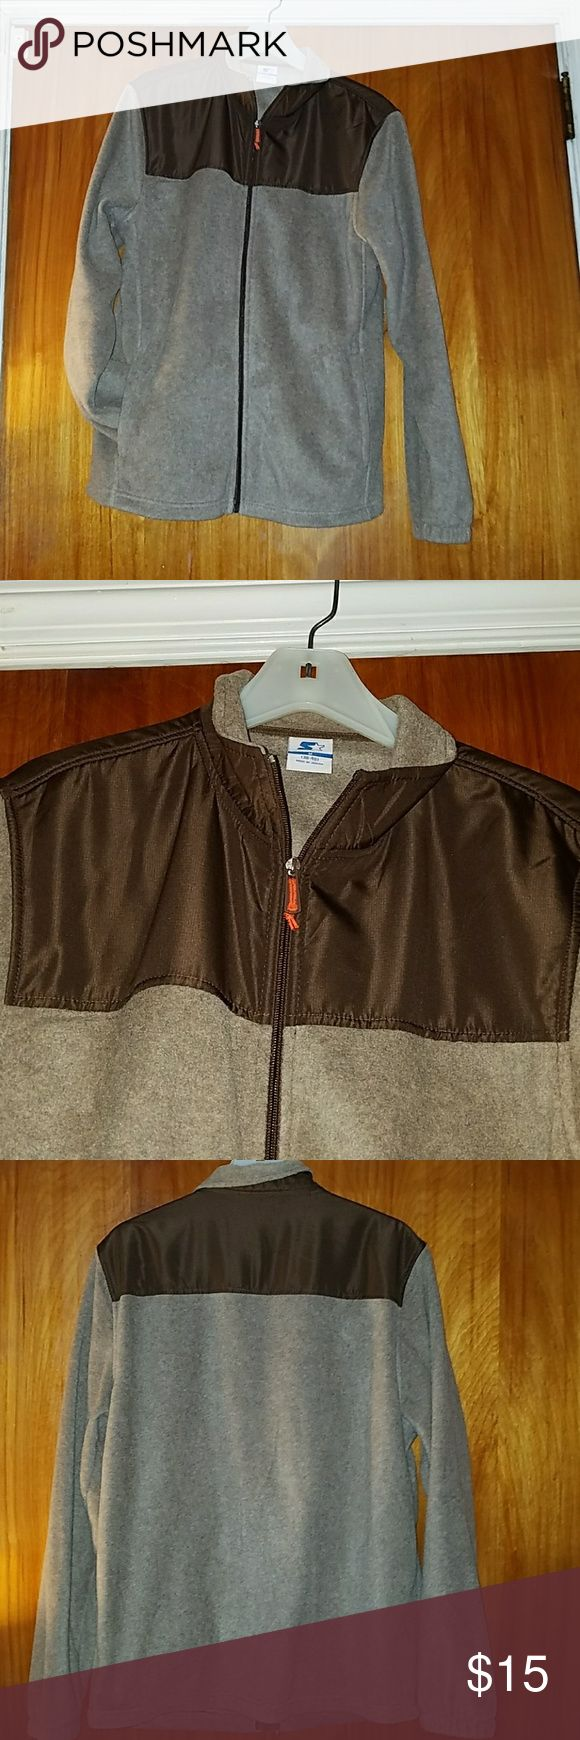 Unisex_Brown zip up hoodie 100% polyester..Excellent condition Jackets & Coats